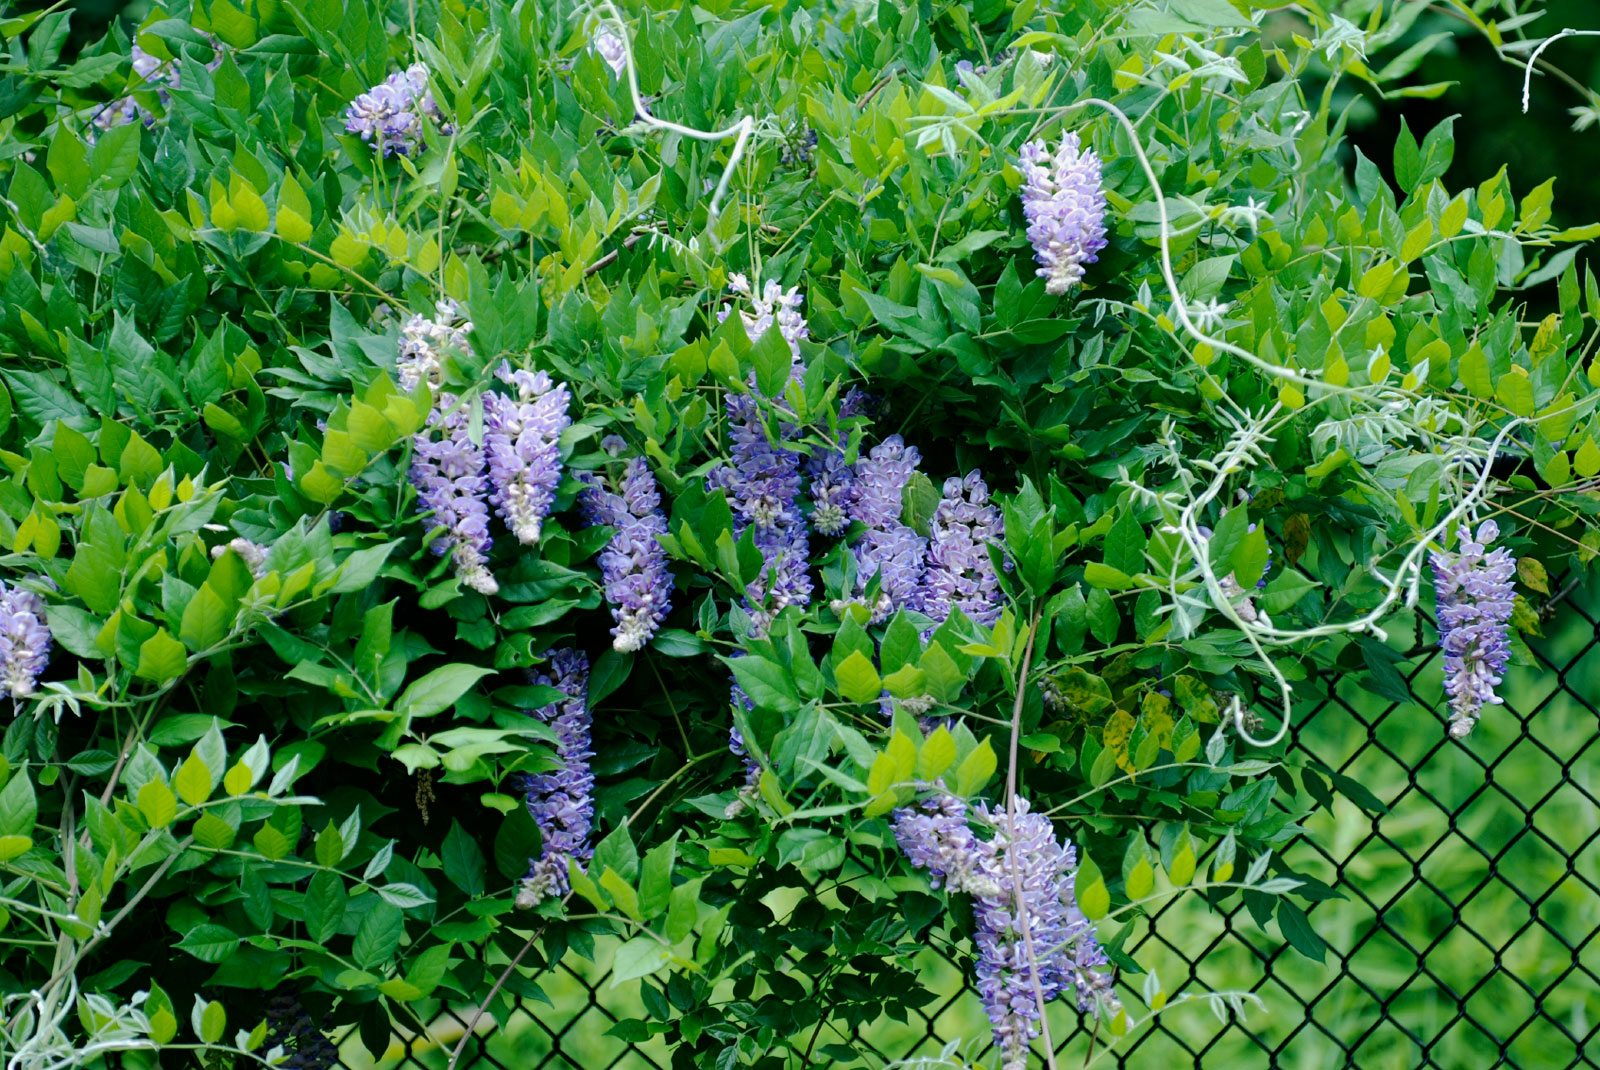 Plants That Grow On Fences Covering Chain Link Fences